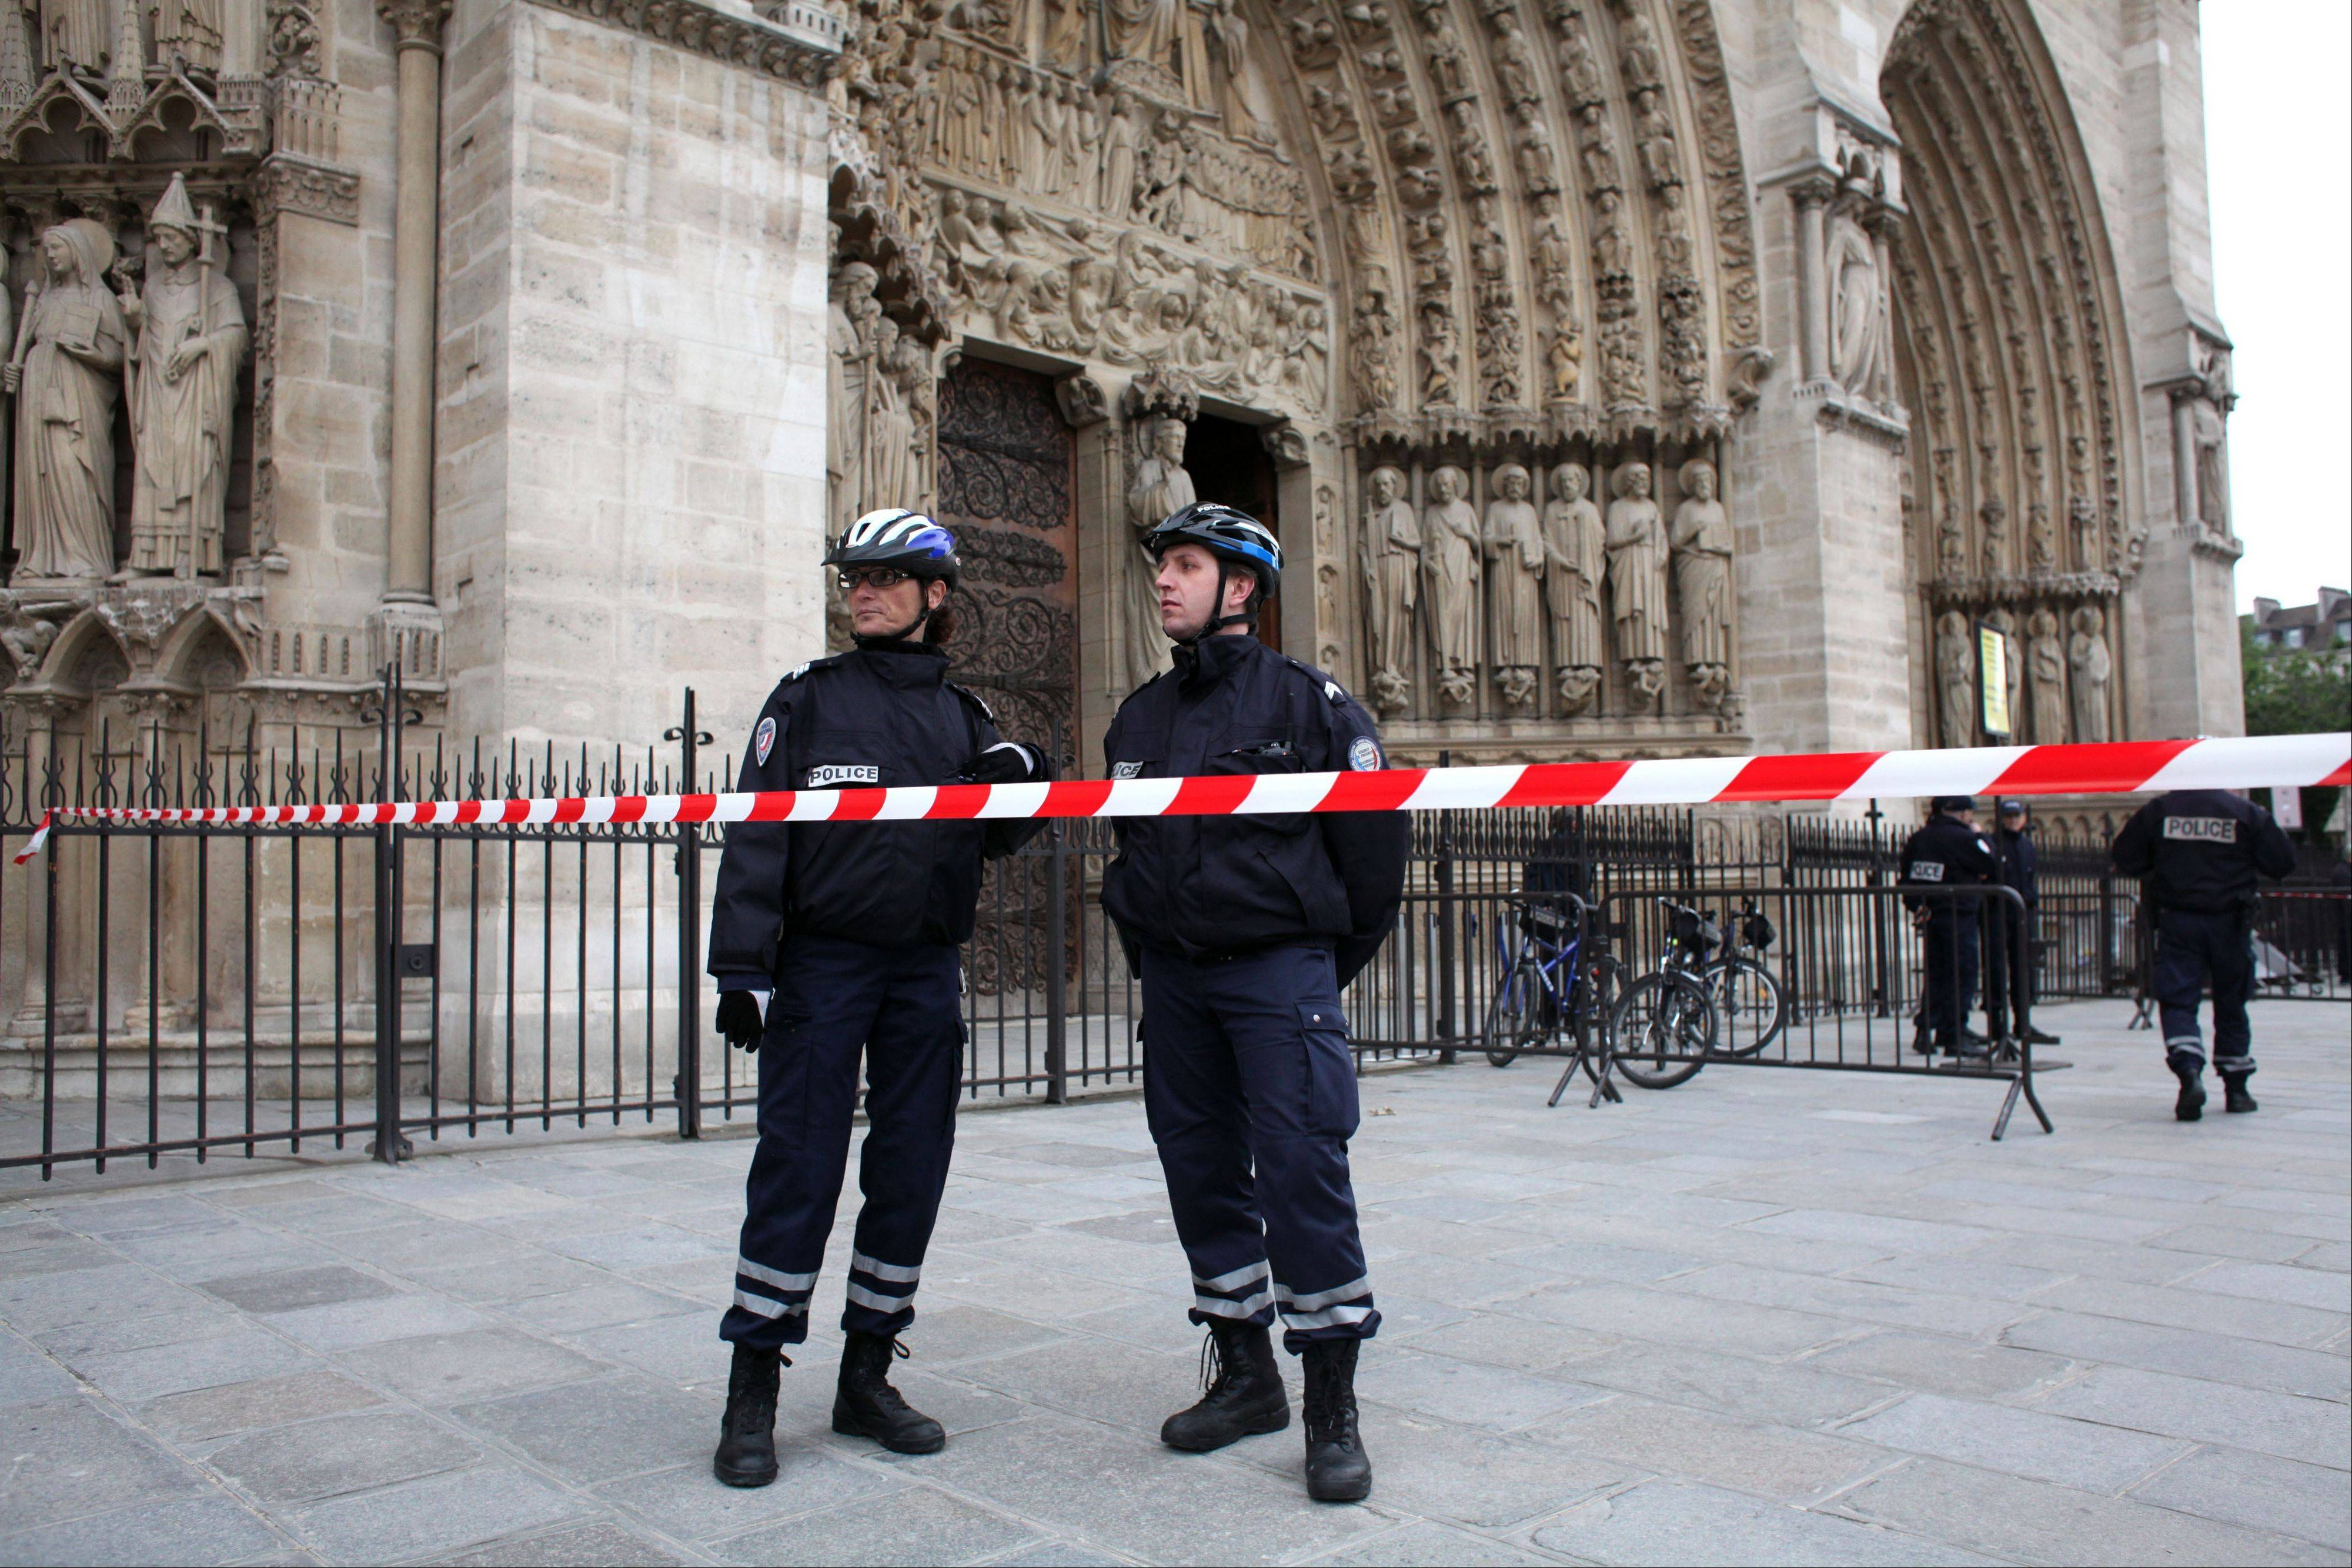 Police officers stand guard in front of Notre Dame Cathedral, in Paris, Tuesday, May 21, 2013. Notre Dame was evacuated after a man committed suicide in the 850-year-old monument and tourist attraction.